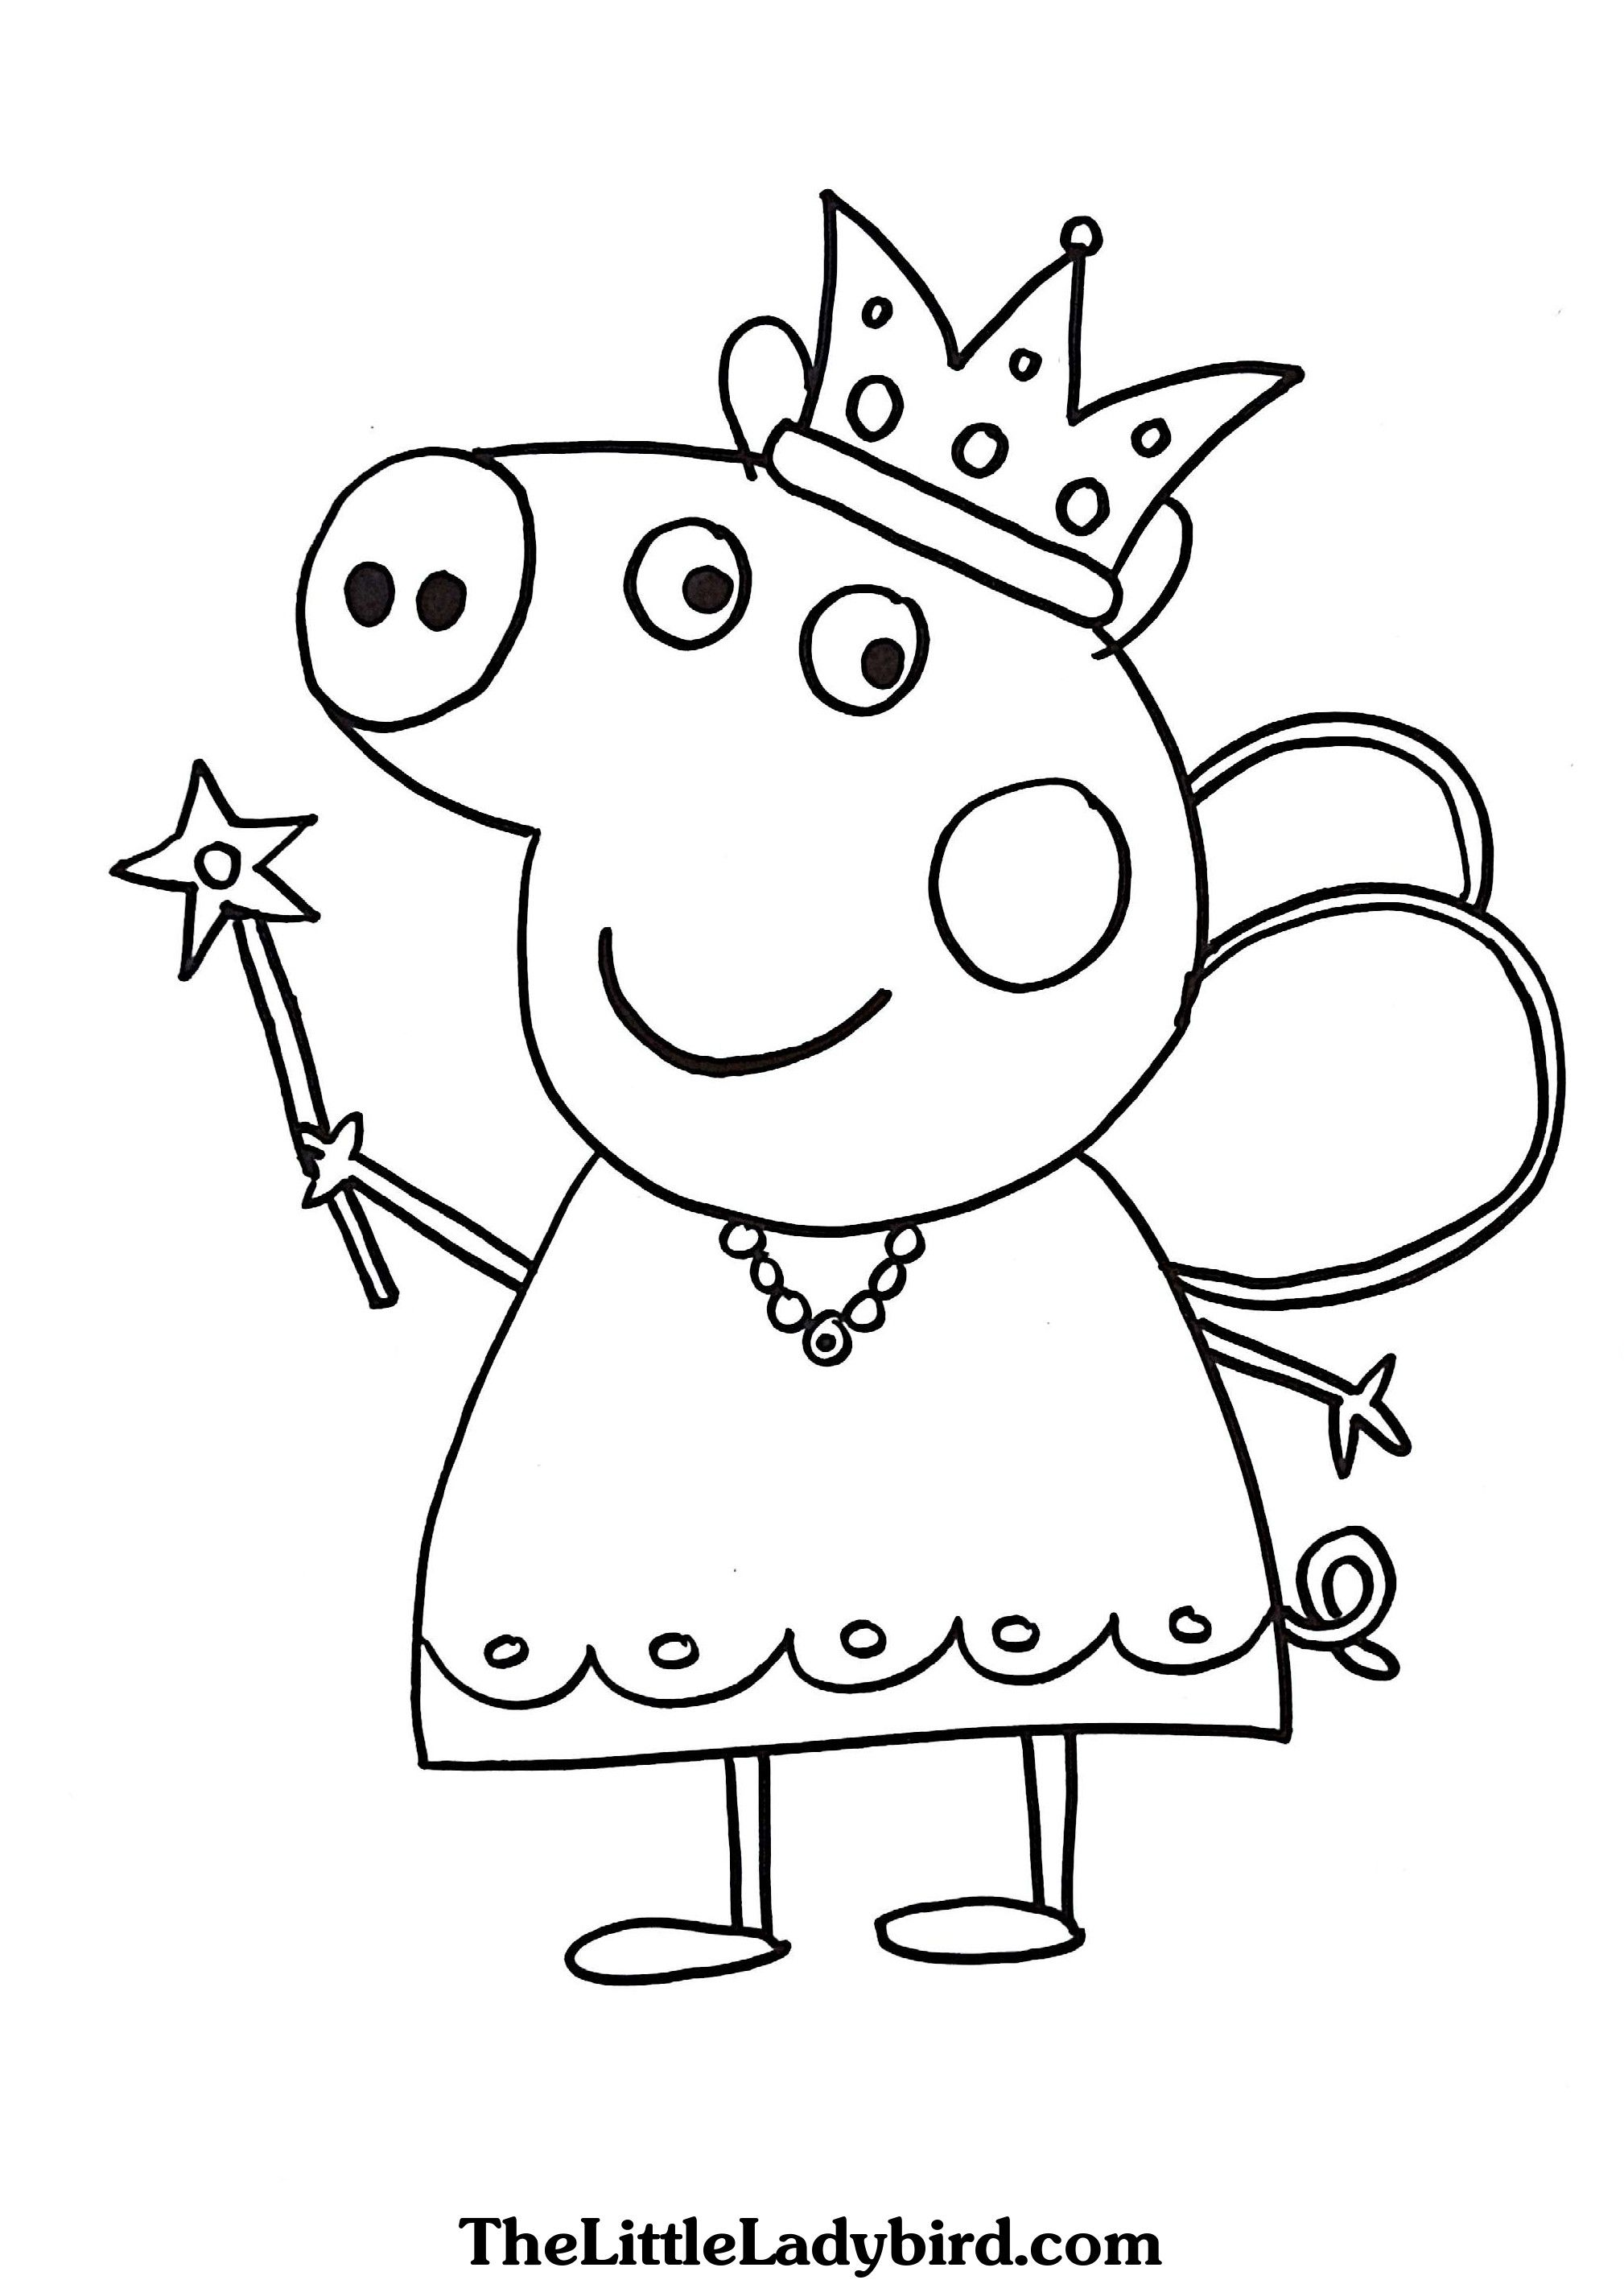 Peppa Pig Coloring Games Online Coloring Pages Allow Kids To Accompany Their Peppa Pig Coloring Pages Peppa Pig Colouring Halloween Coloring Pages Printable